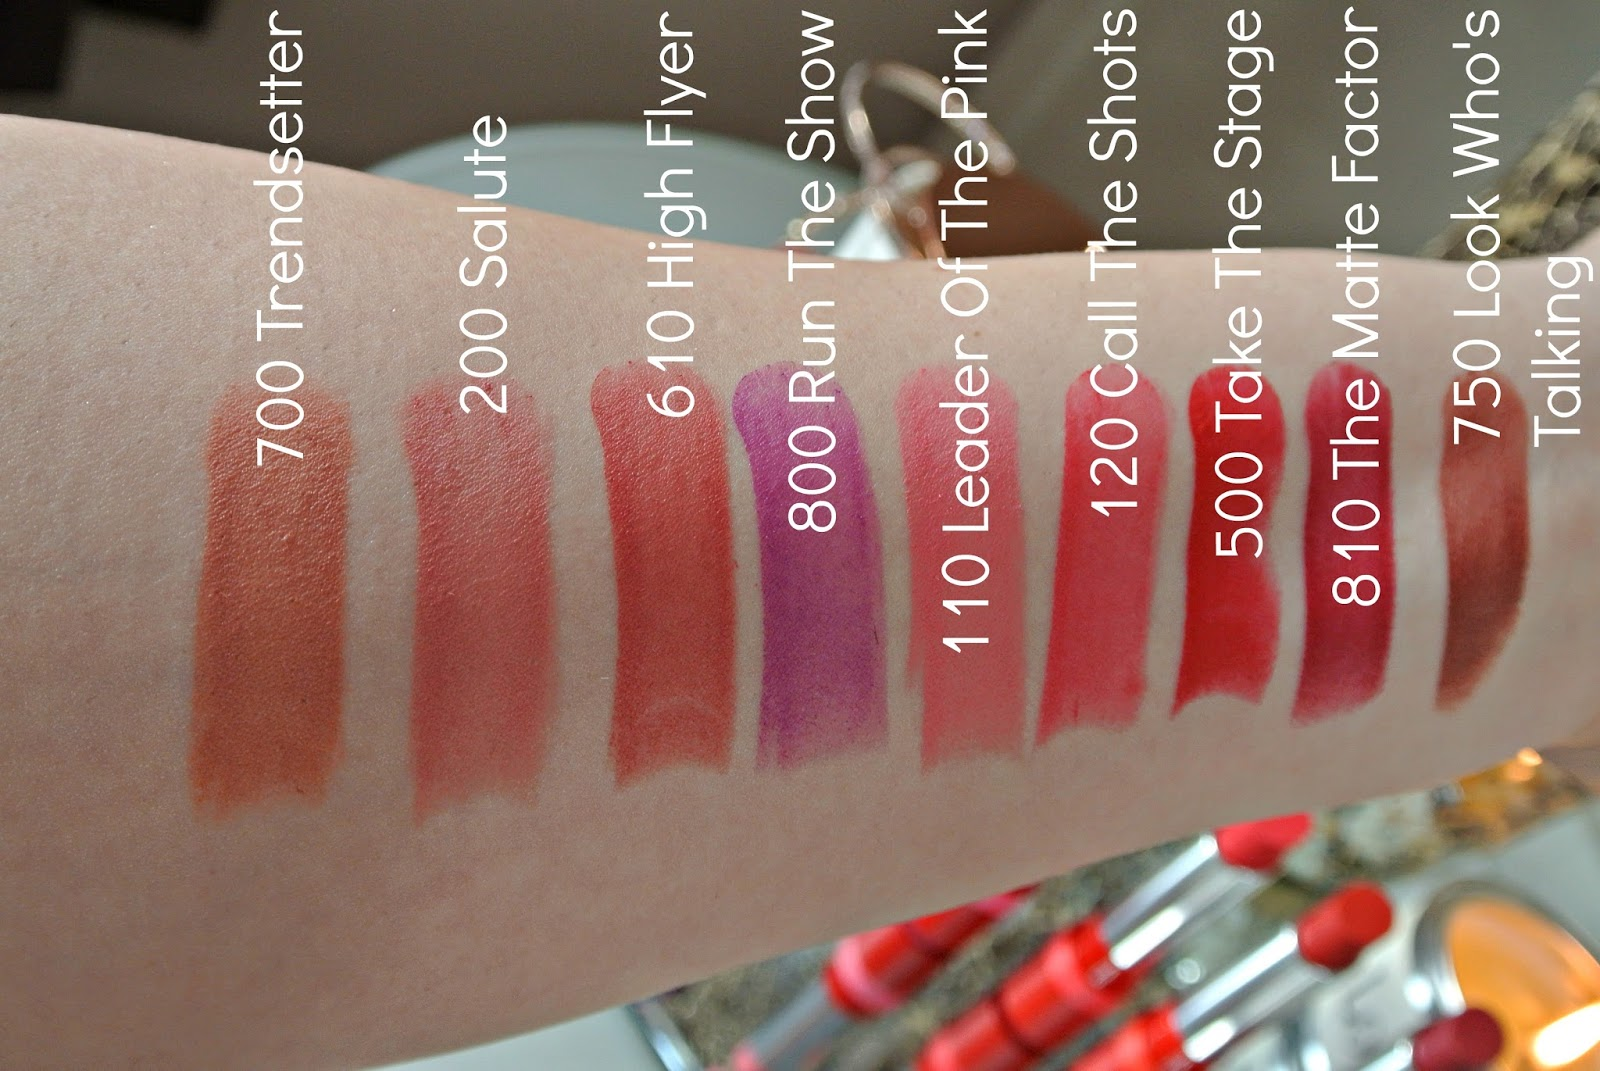 Rimmel The Only 1 Matte Lipstick Swatches Image